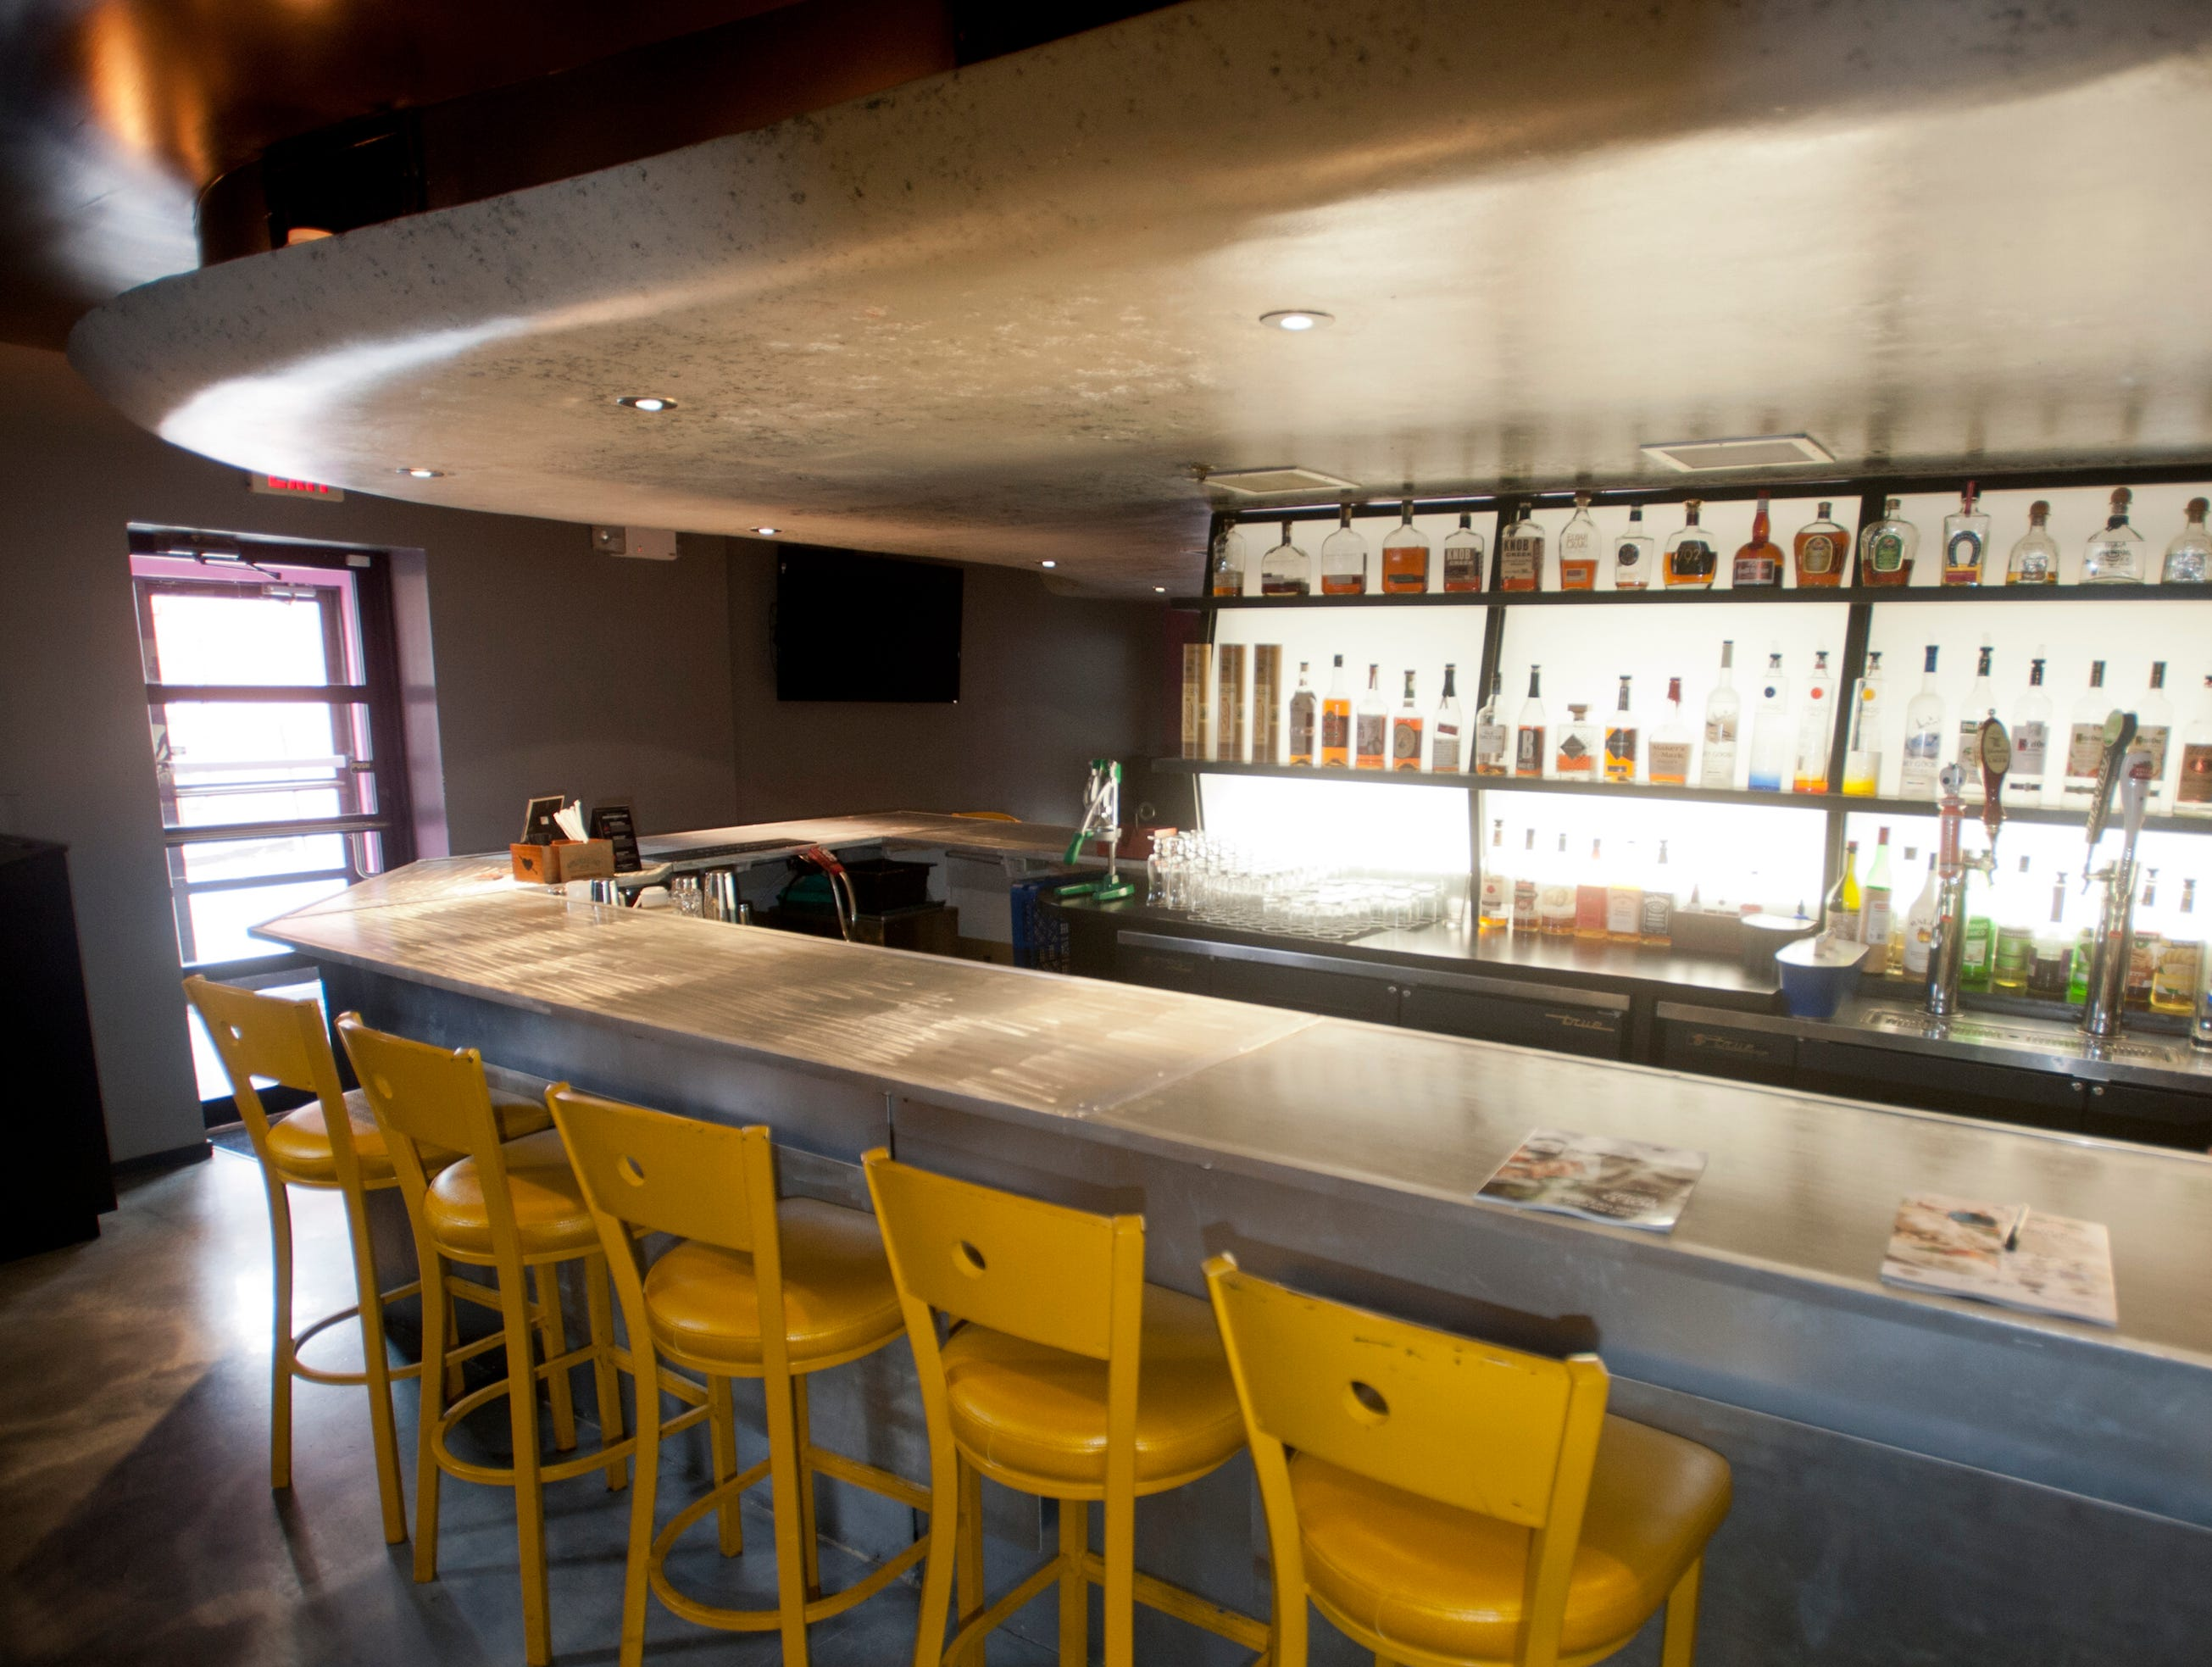 The bar in the Flavour Restaurant and Lounge on Bardstown Road.November 08, 2018